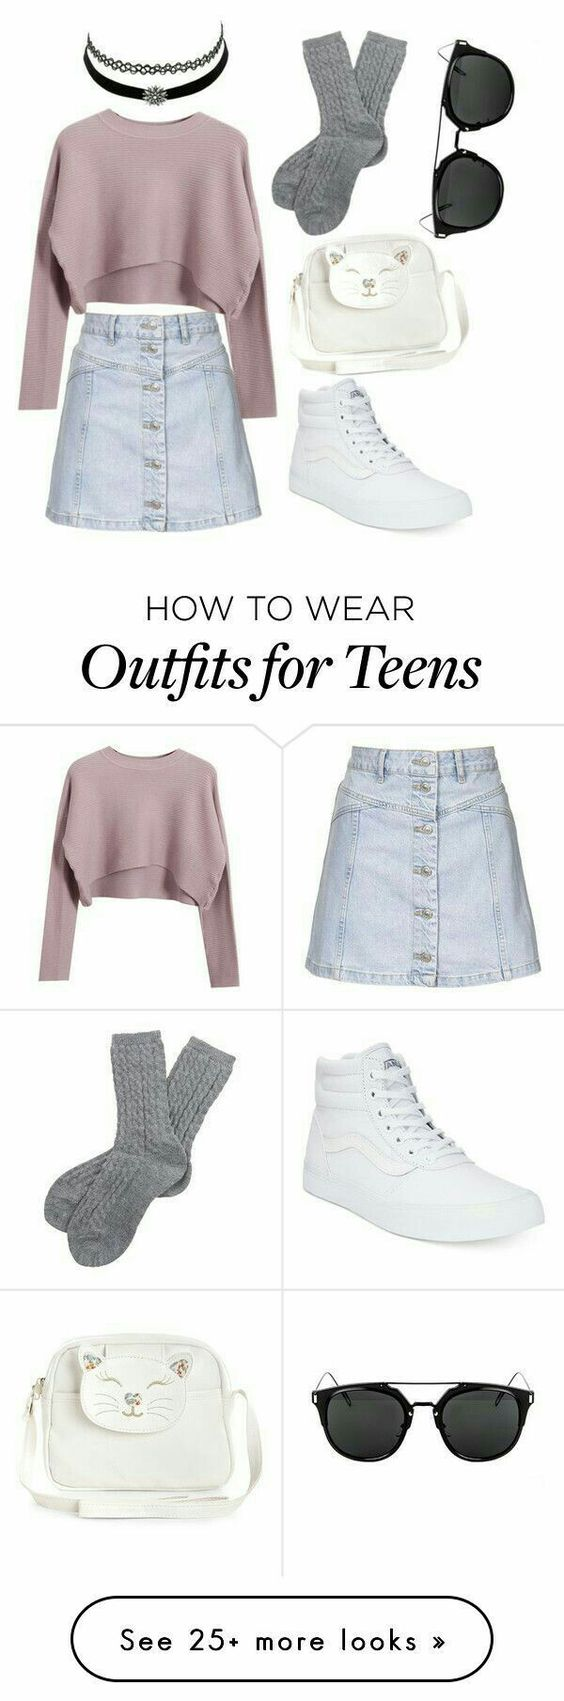 teen outfits 09 sizzlingmagazine - 15+ Cute Outfit Ideas for Teen Girls 2018 – Teenage outfits for School